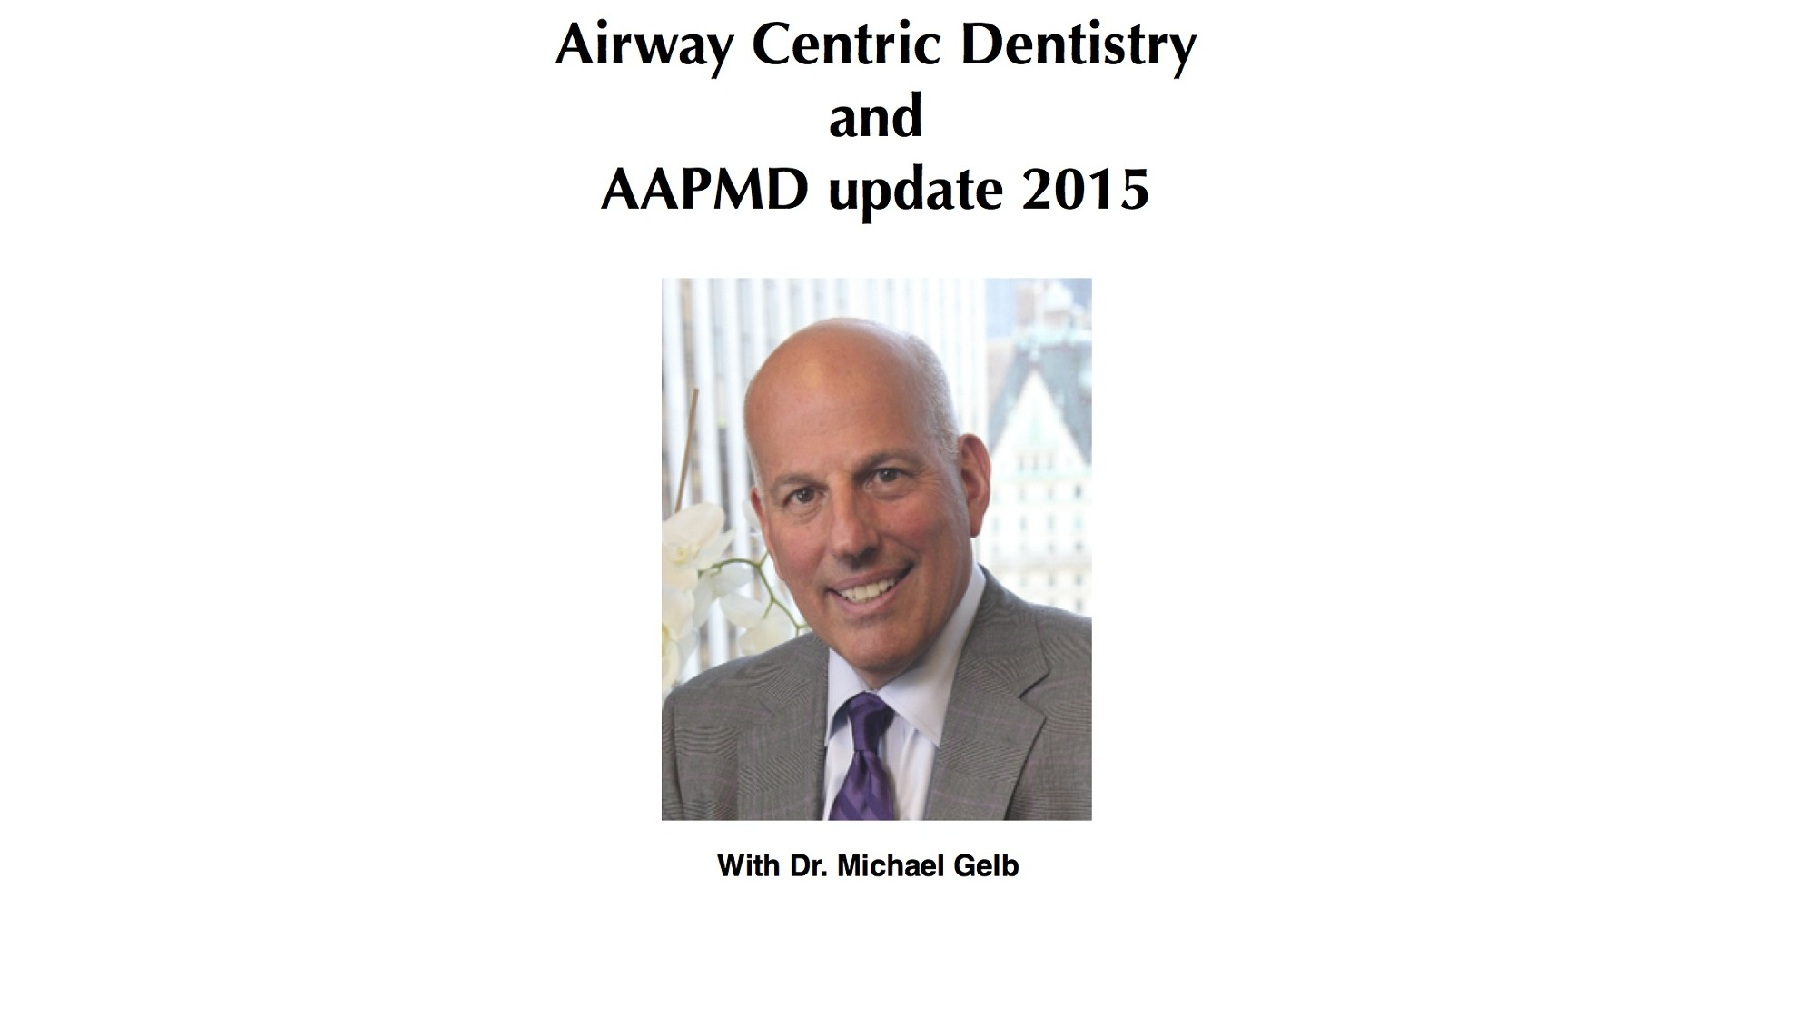 Airway Centric Dentistry and the AAPMD